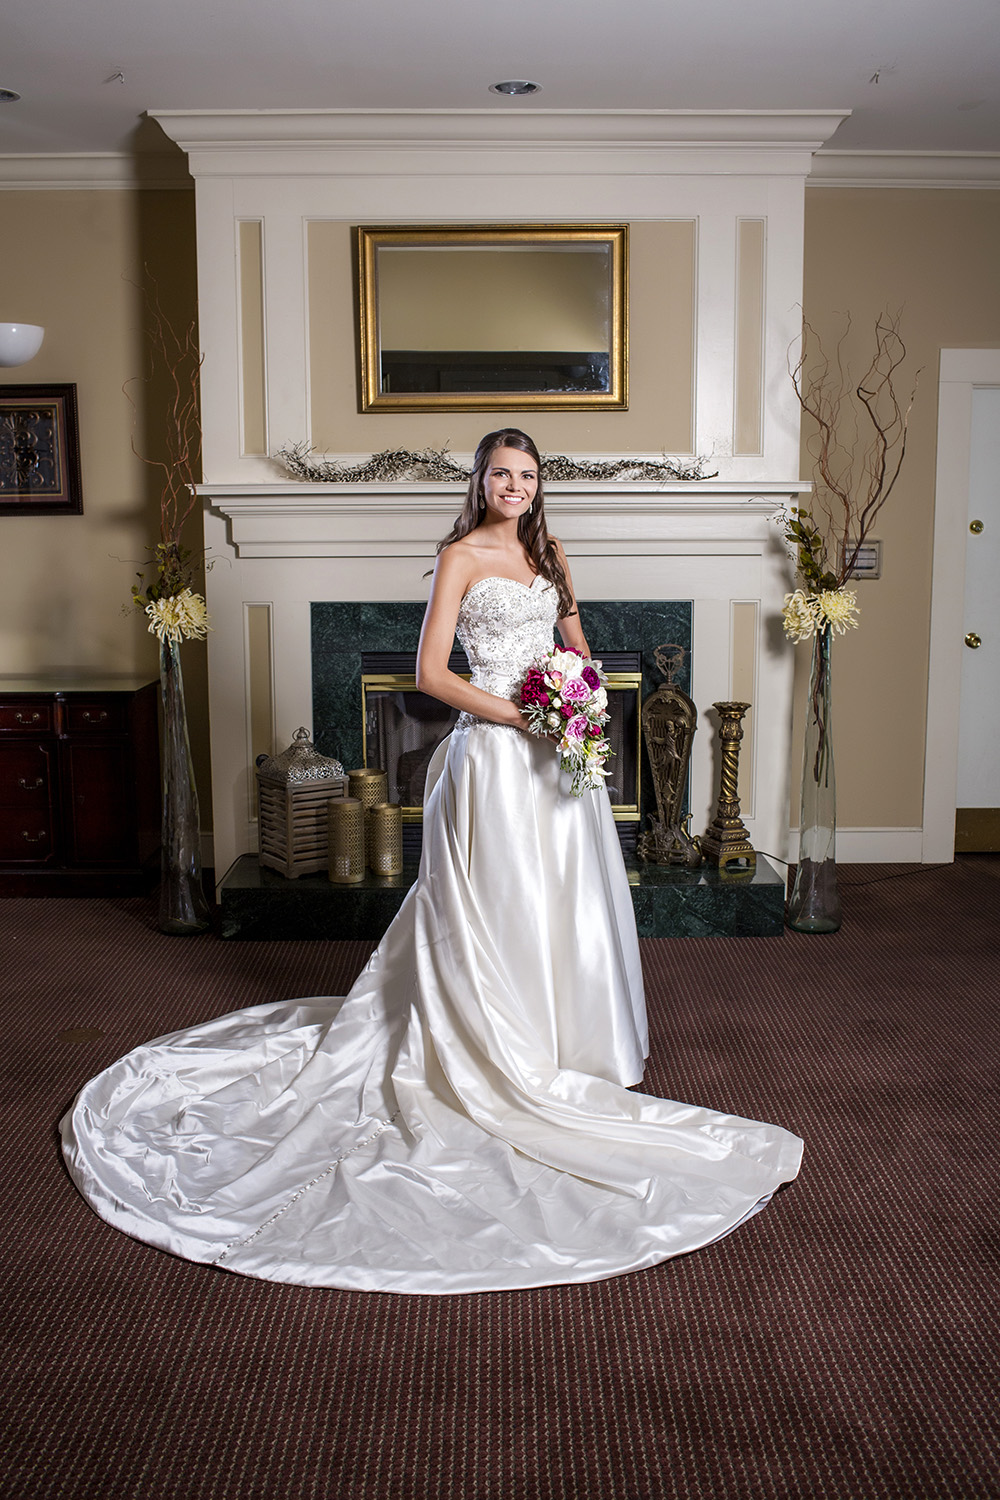 Molly_Bridals_Conway_Country_Club_KES_Weddings_1.JPG